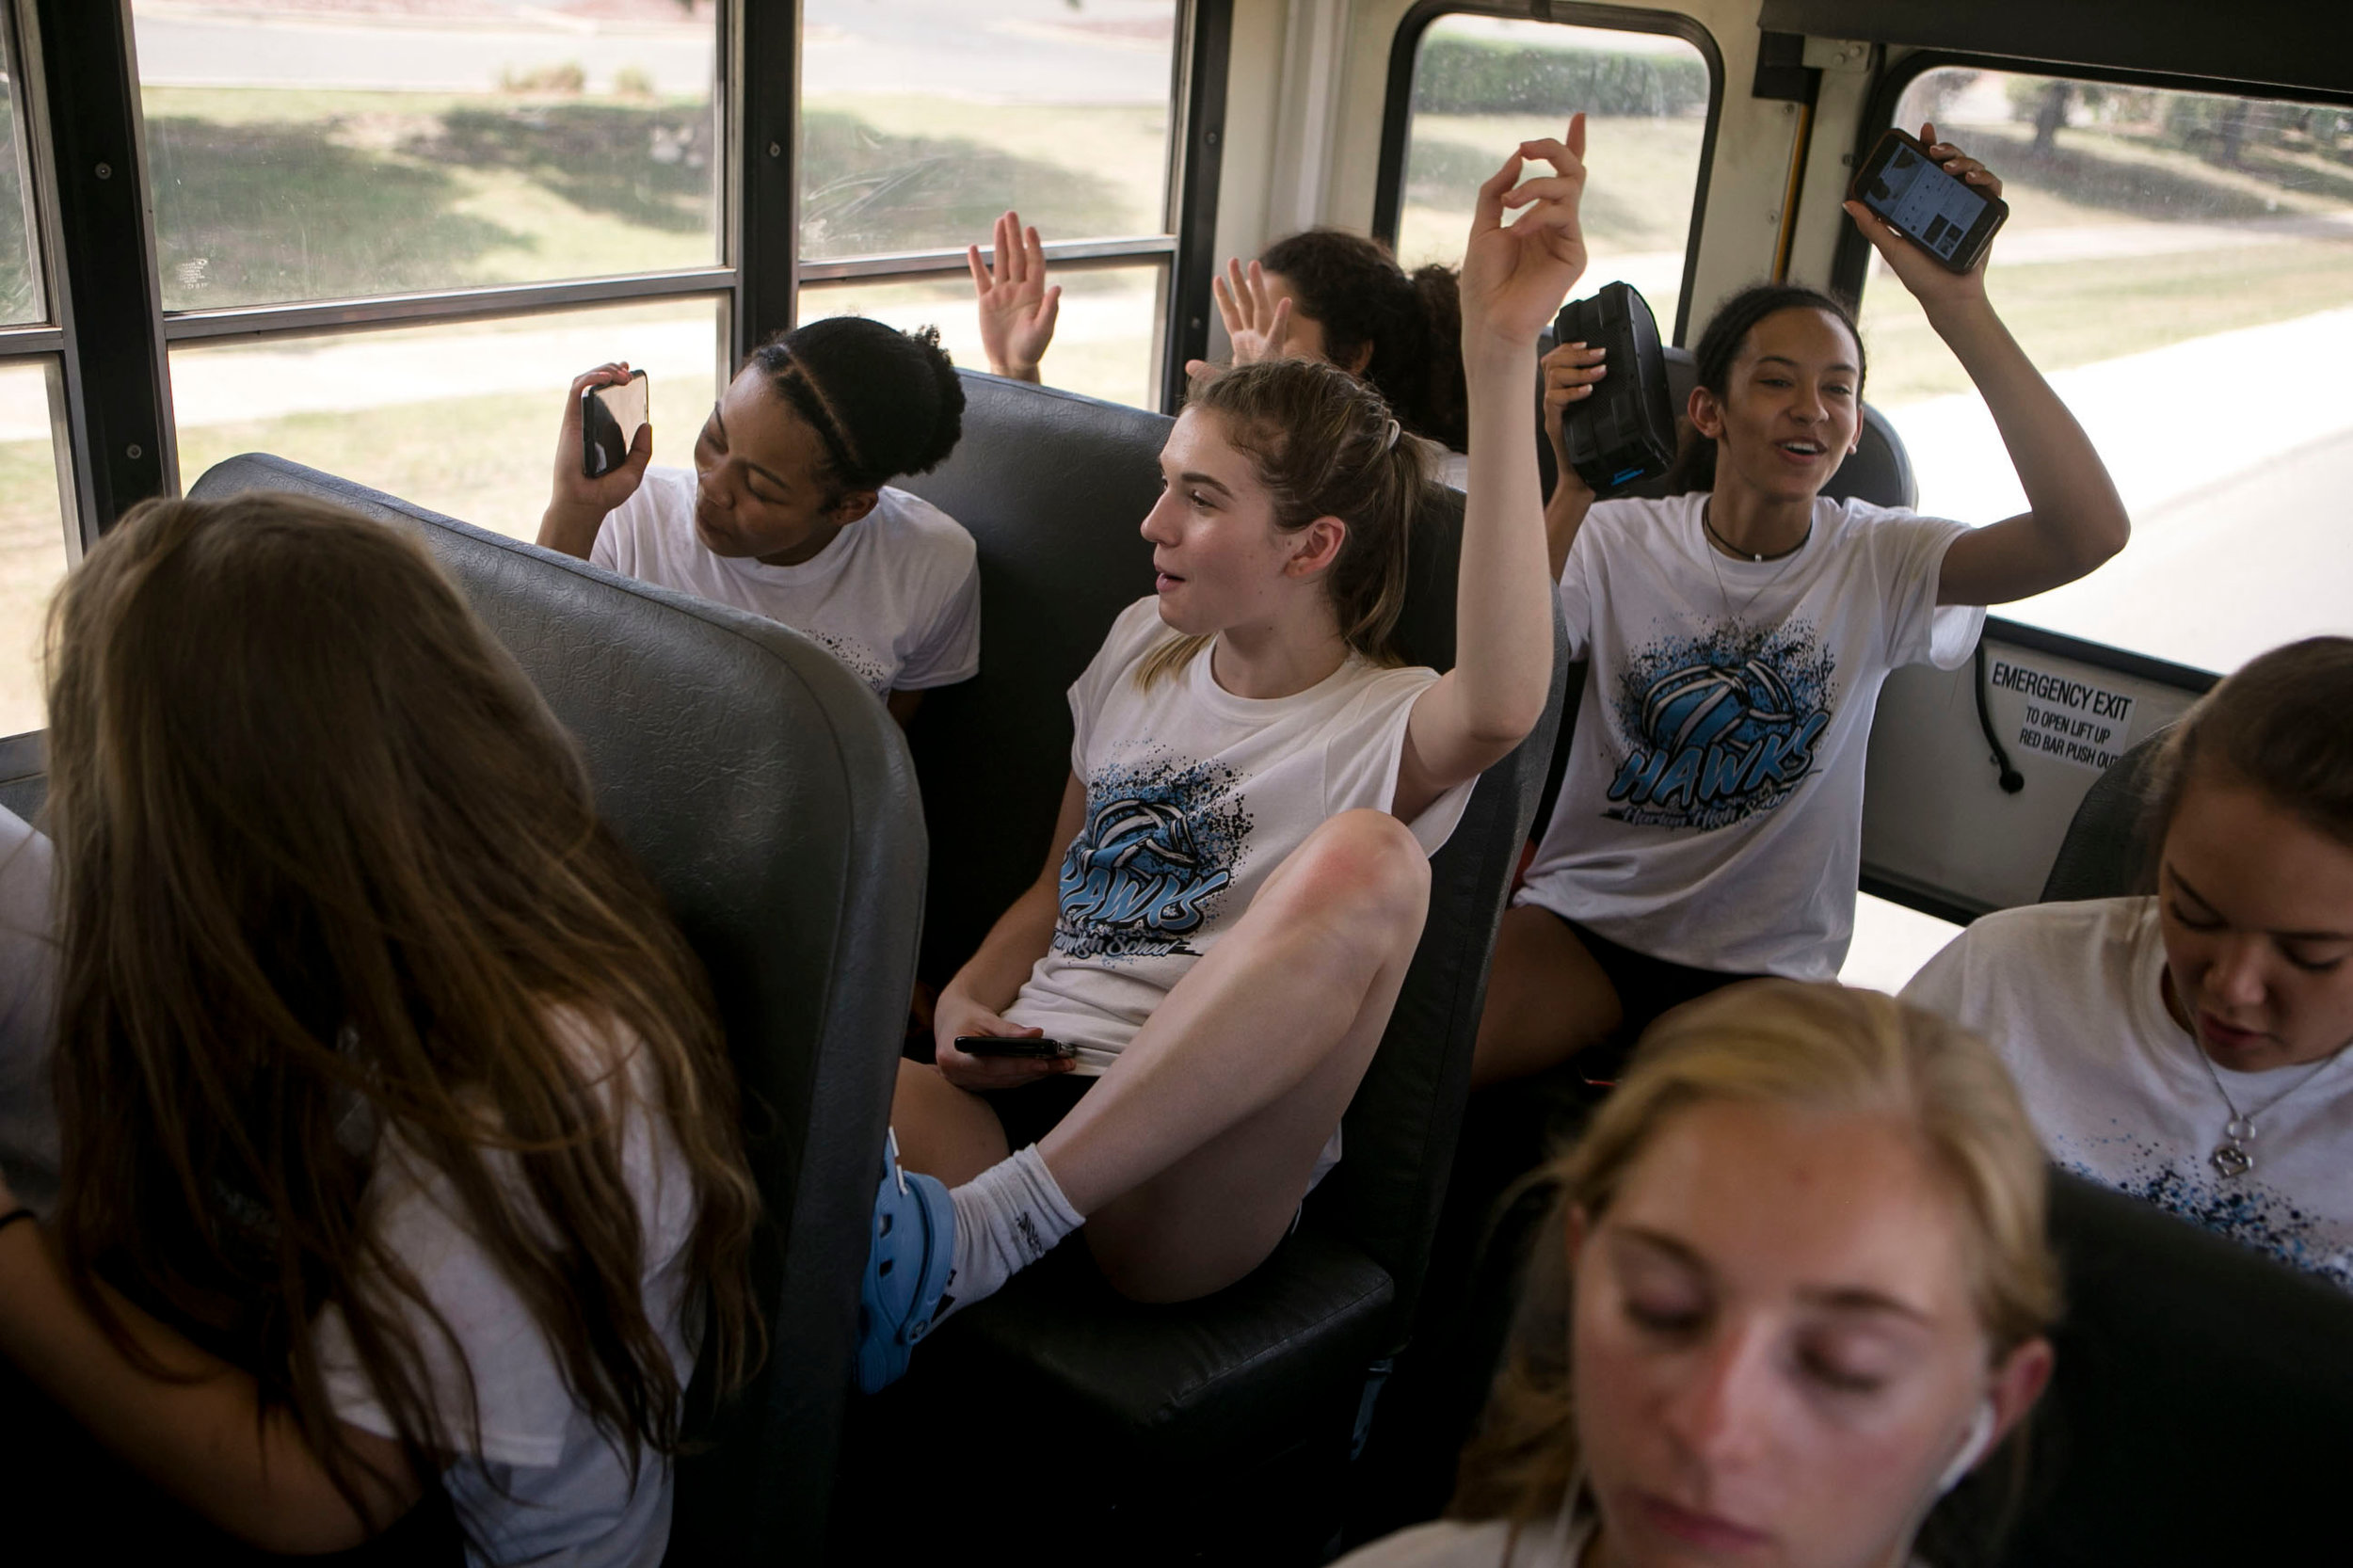 .On the way home from the Harlan High School varsity volleyball scrimmage, the girls sing along to music playing on speakers at the back of the bus.